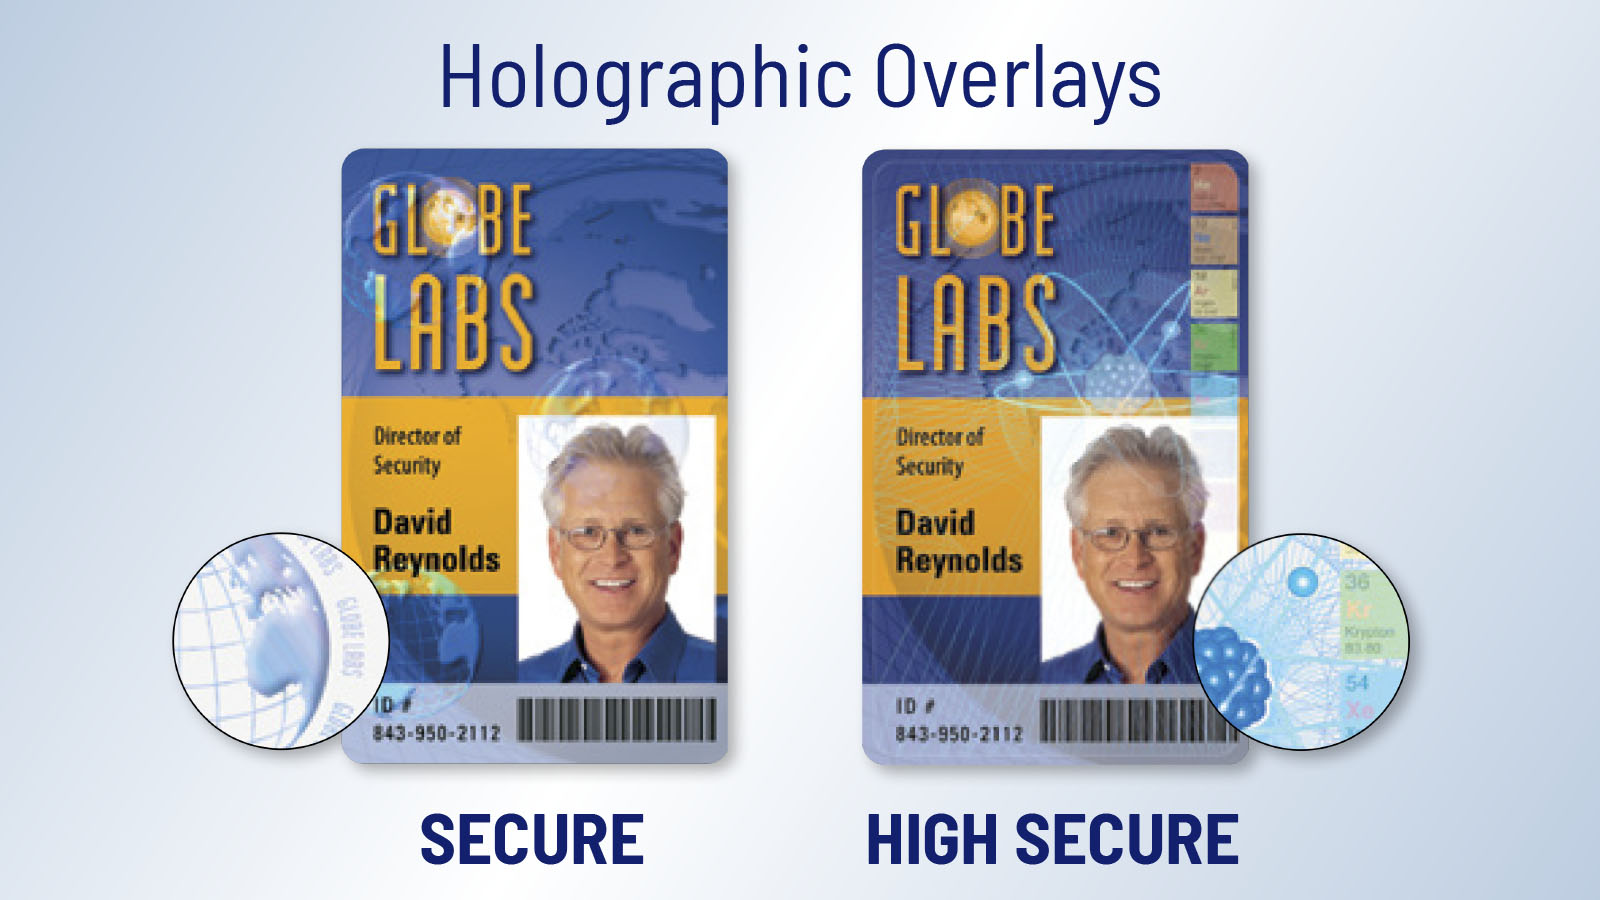 FARGO® ID Card Printers - Secure Holographic Overlays